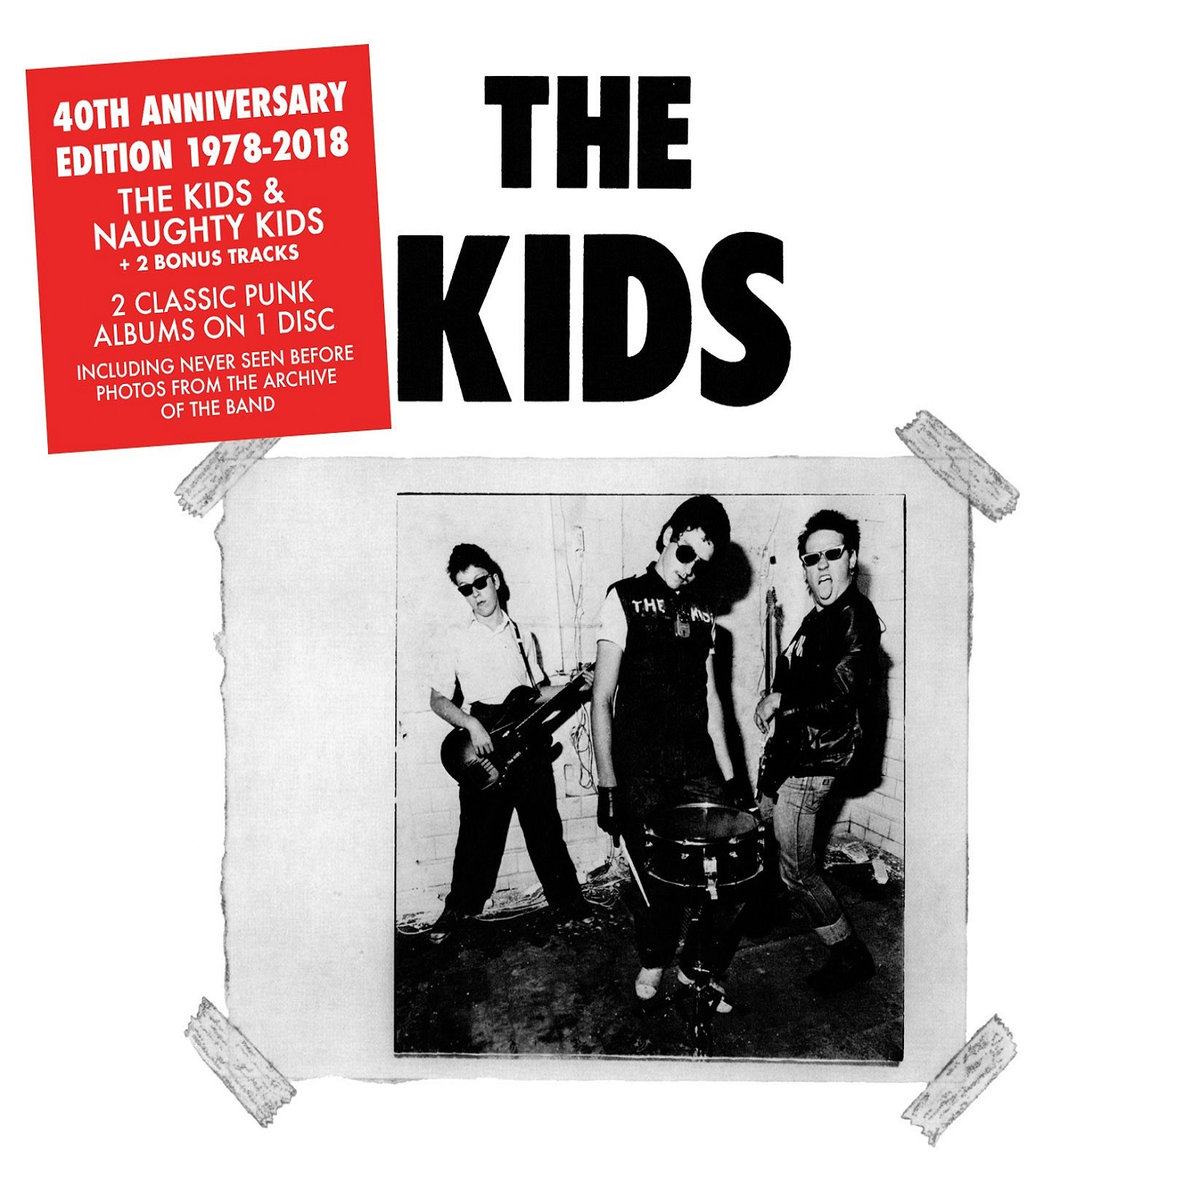 The Kids - The Kids & Naughty Kids 40th Anniversary Edition